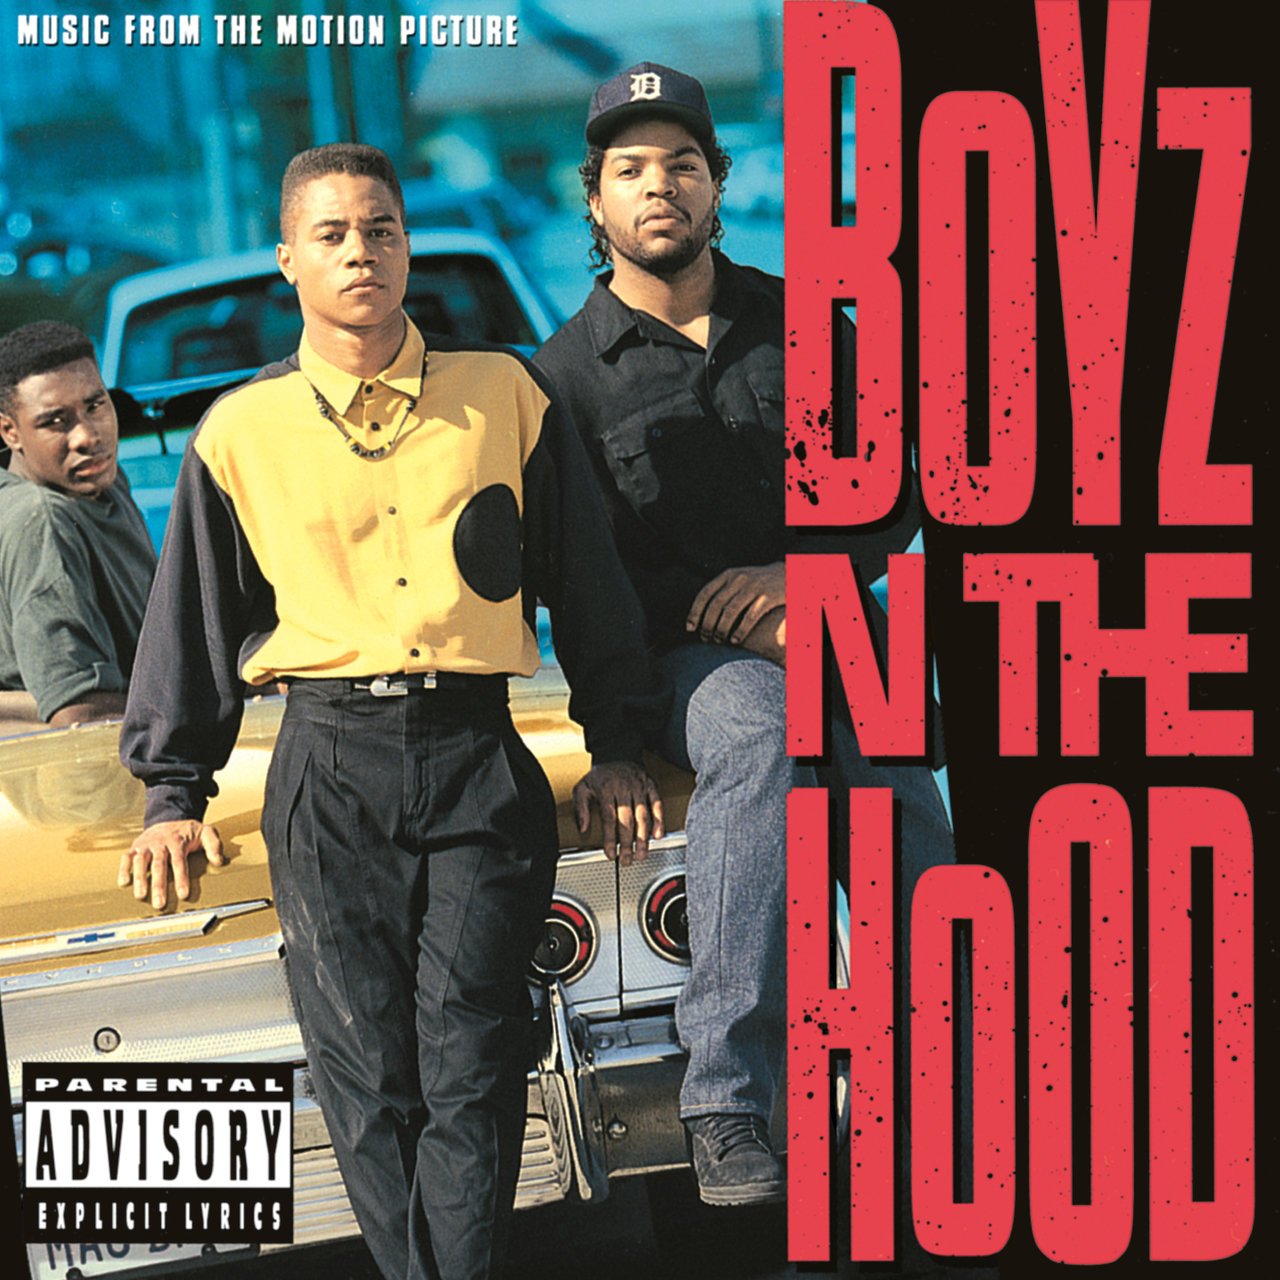 boyz in the hood The 100 Greatest Movie Soundtracks of All Time